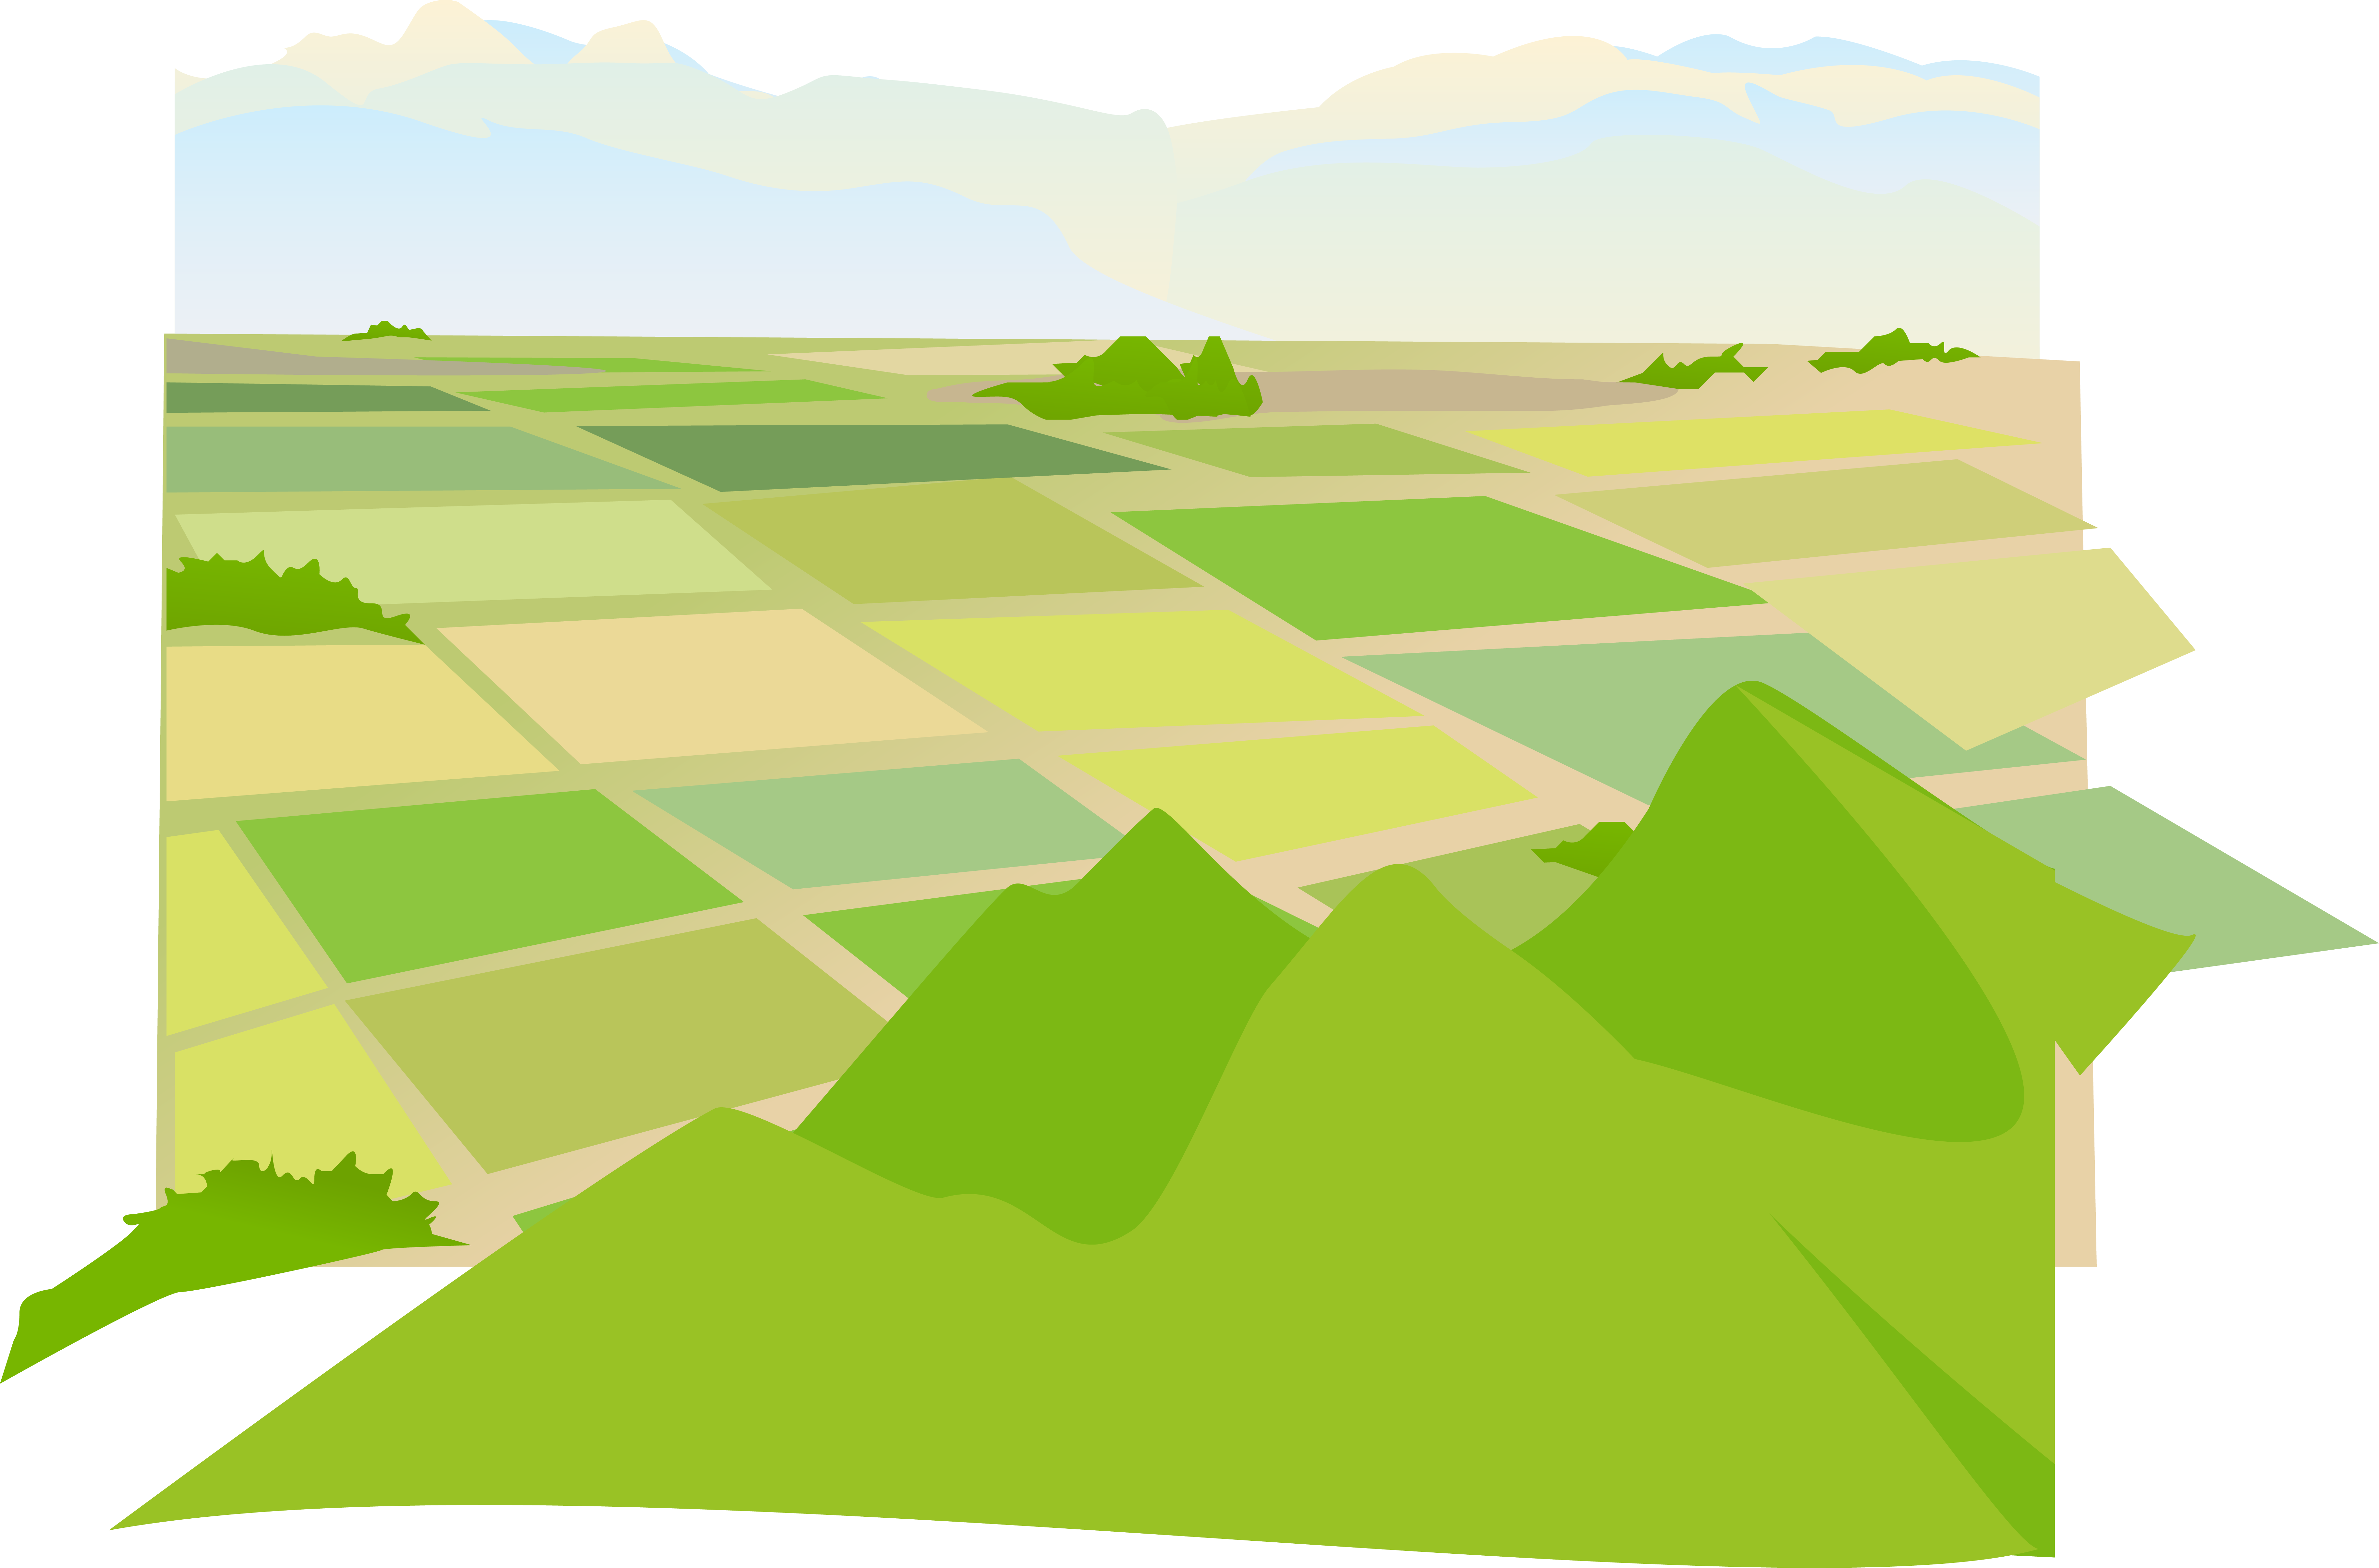 clipart download China vector plain. Euclidean download farm farmland